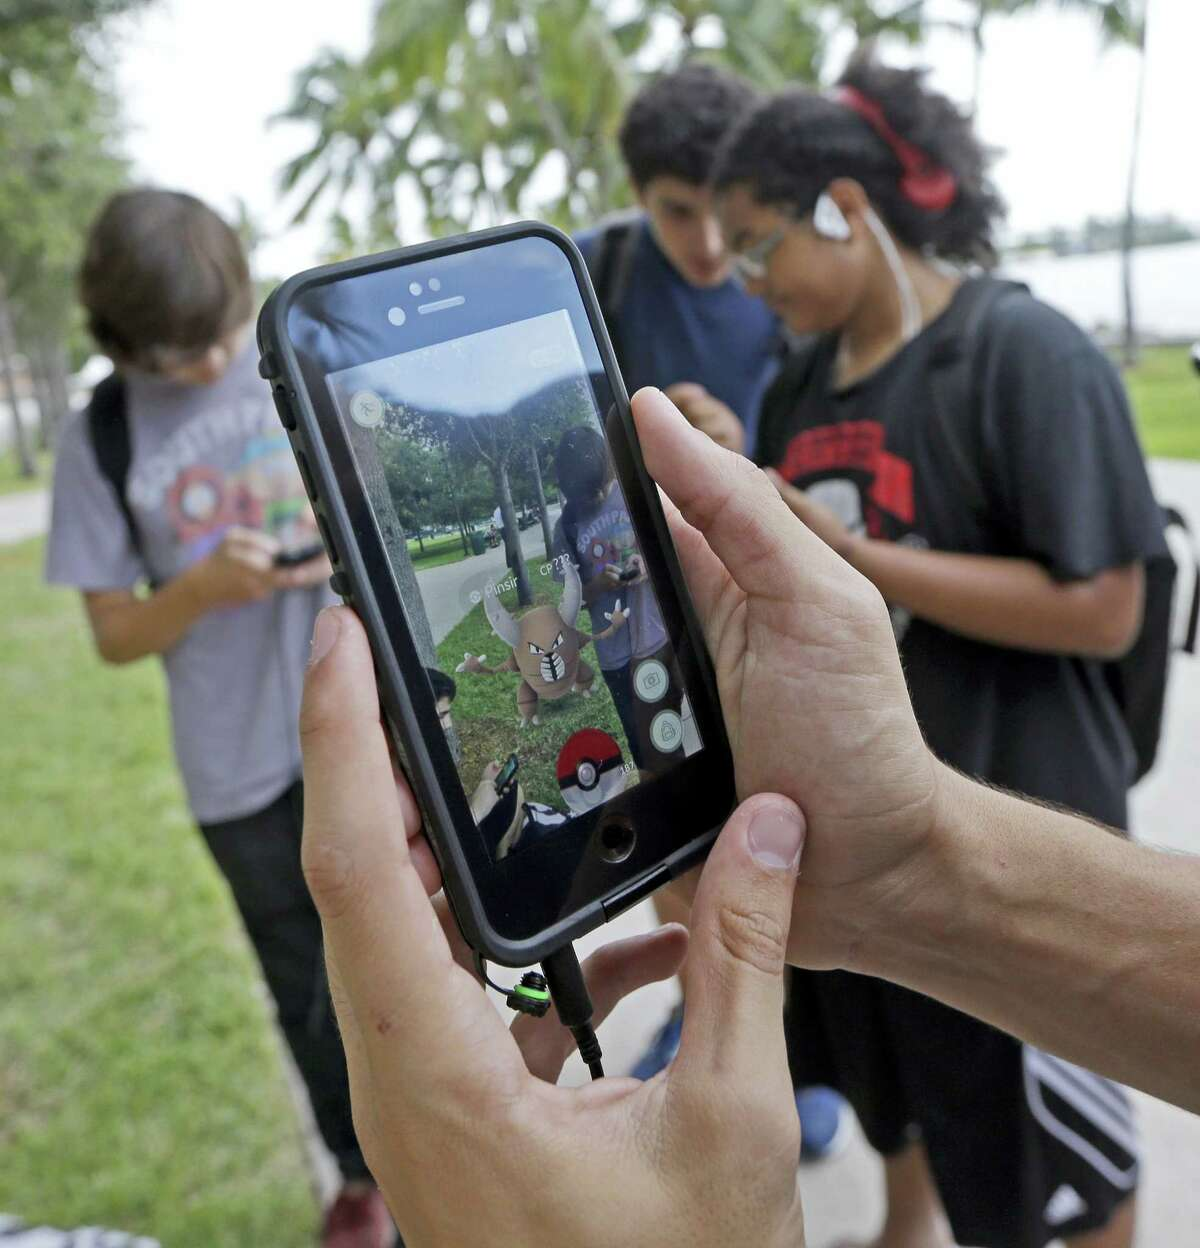 """The """"Pokemon Go"""" craze has sent legions of players hiking around cities and battling with """"pocket monsters"""" on their smartphones."""